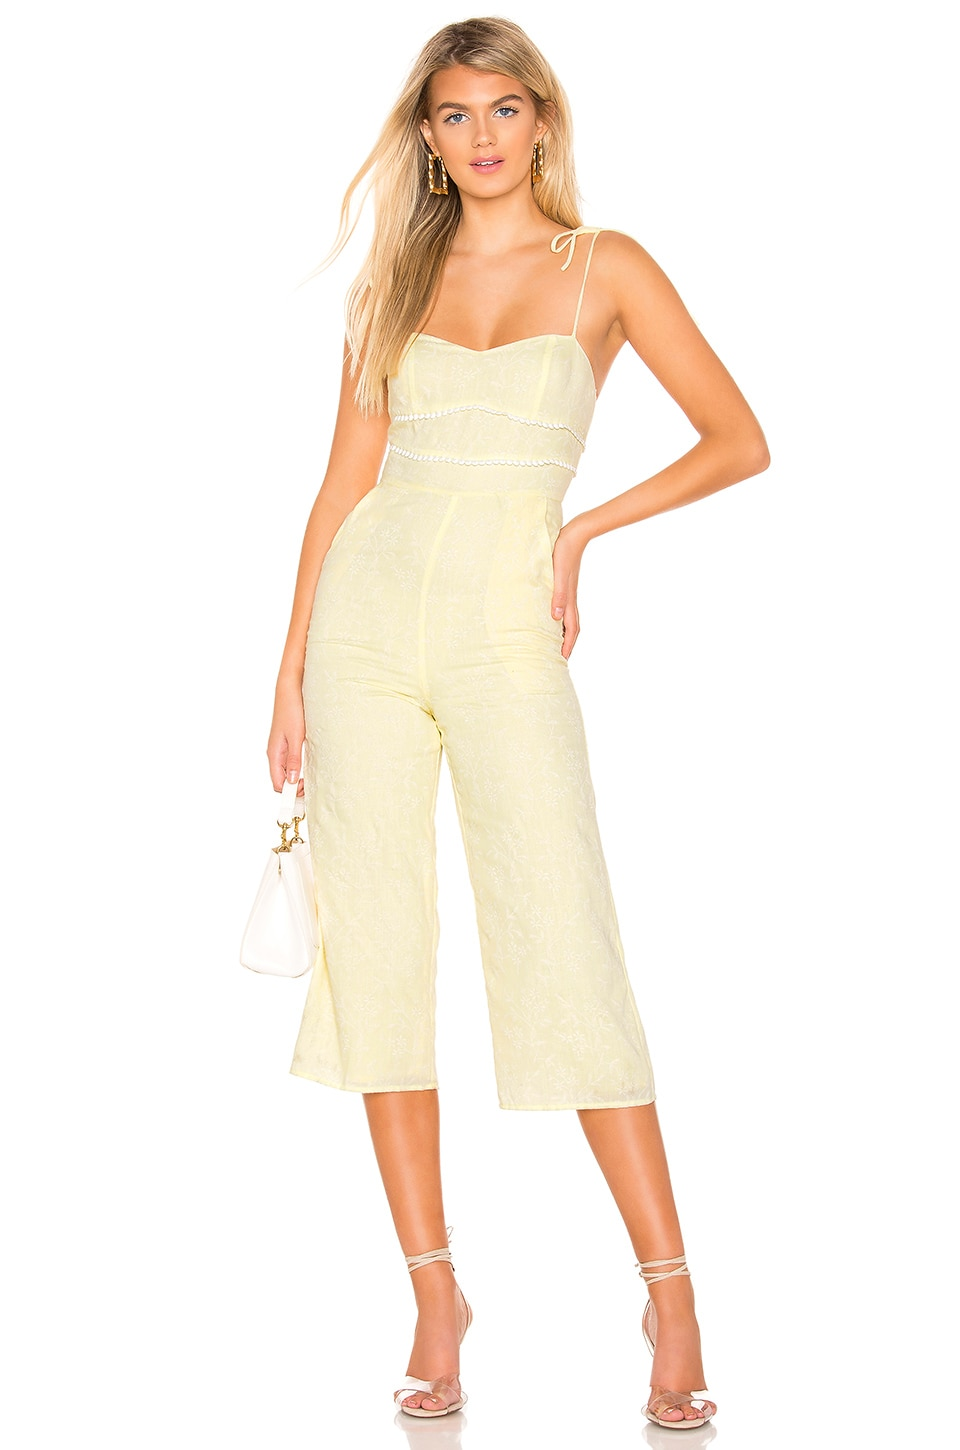 MAJORELLE Portman Jumpsuit in Baby Yellow